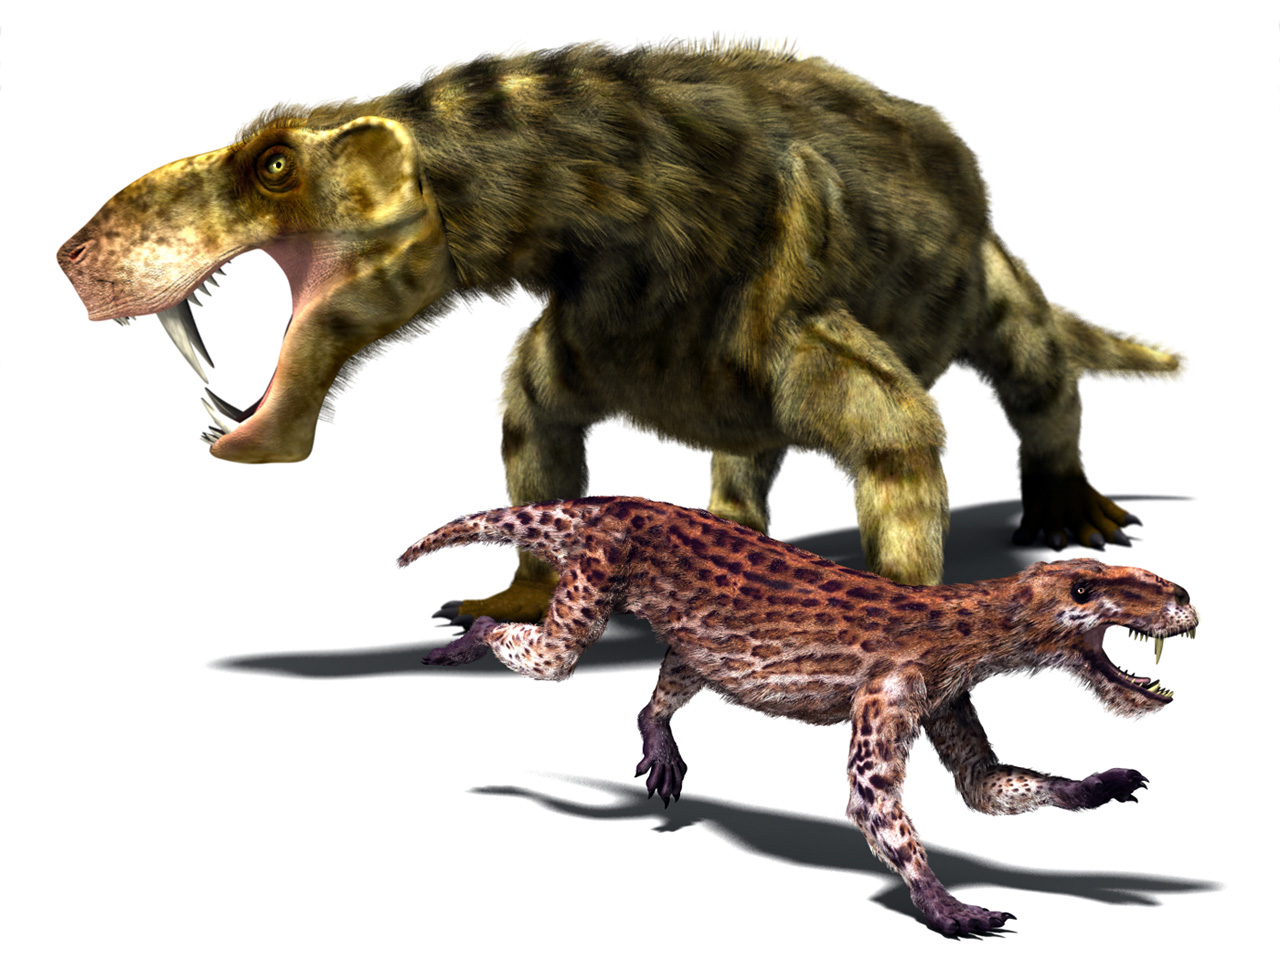 Saber toothed animals